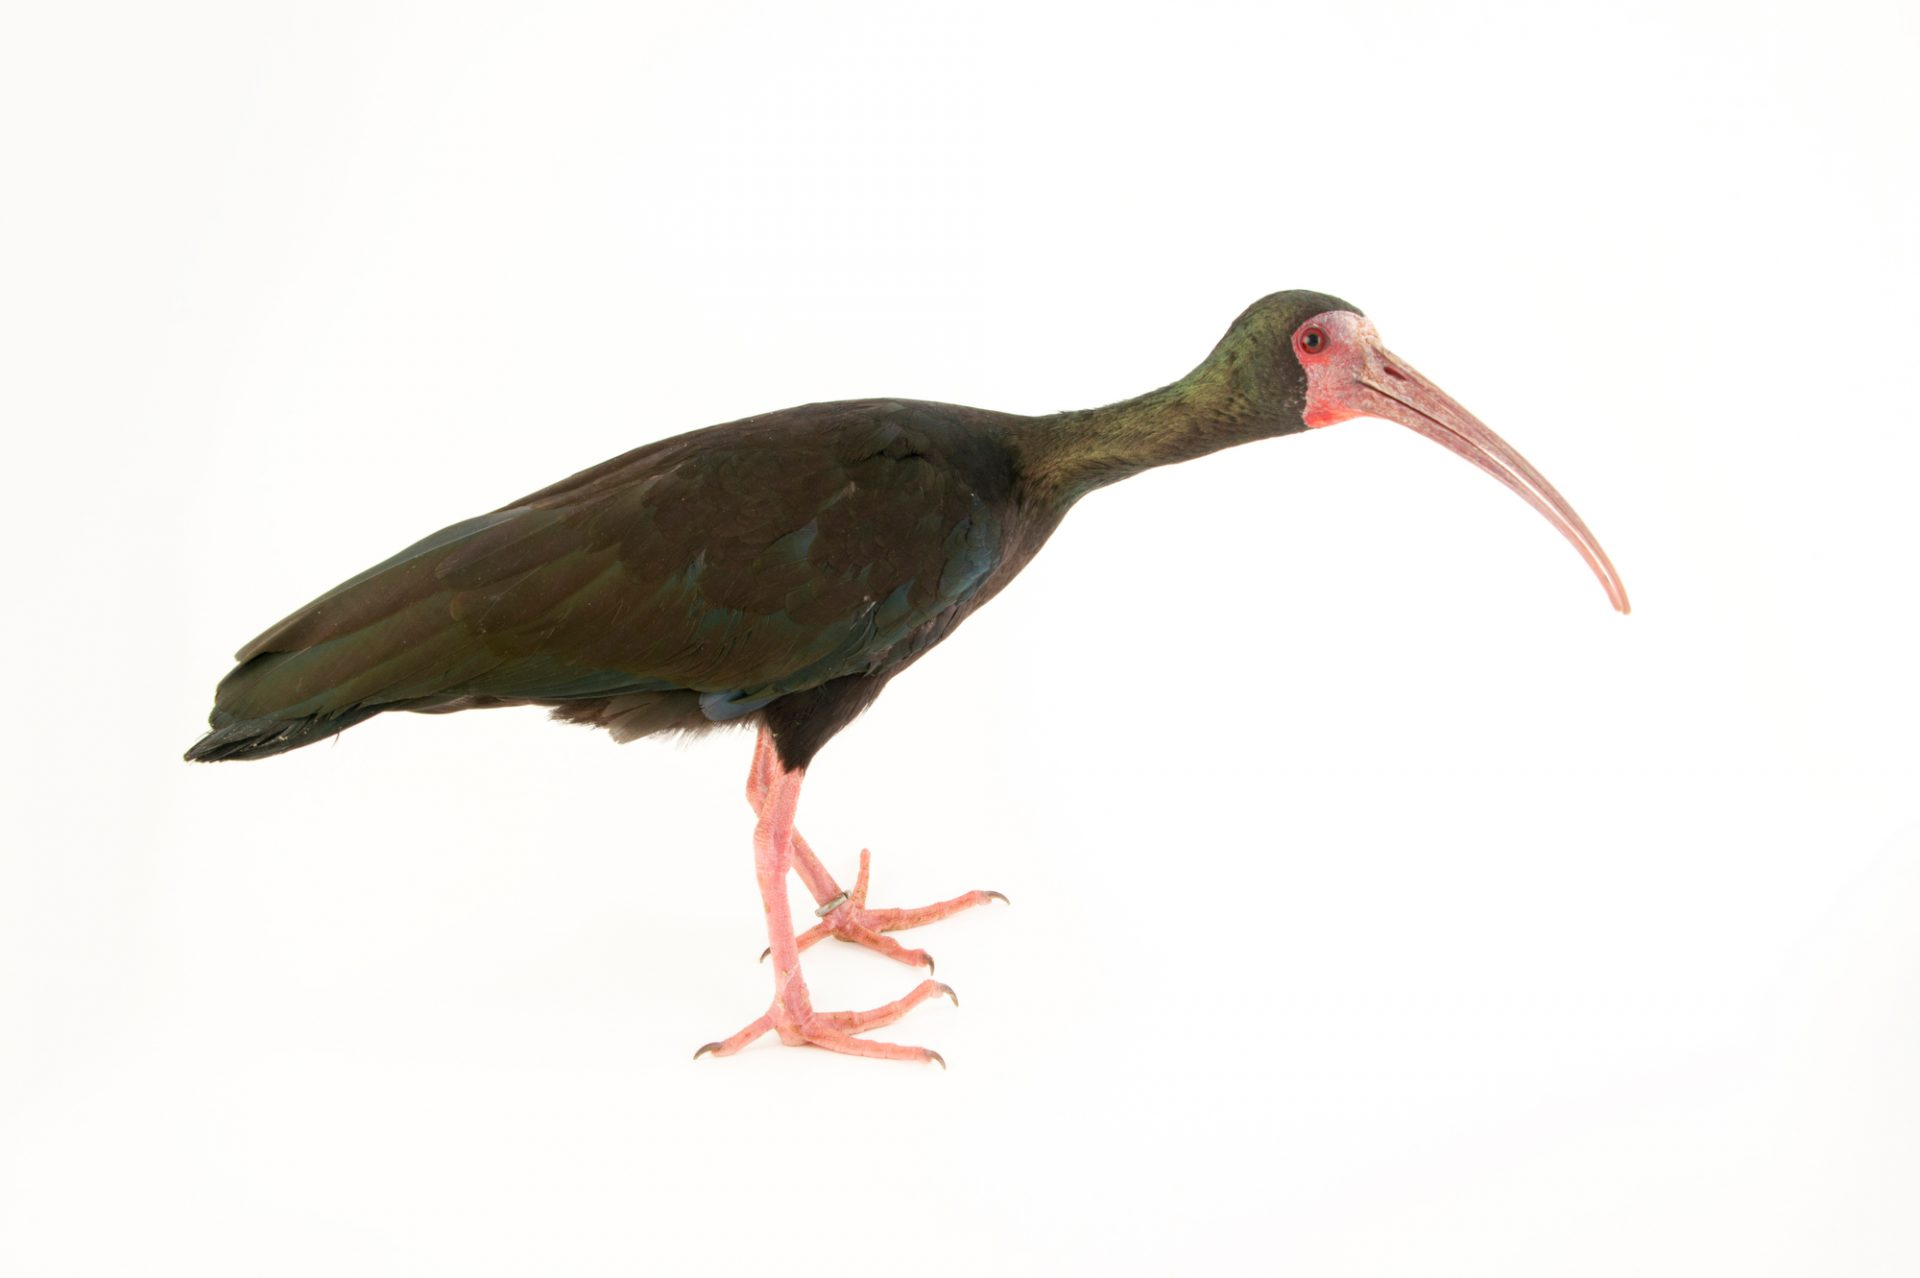 Photo: Bare-faced ibis (Phimosus infuscatus) at the National Aviary of Colombia.